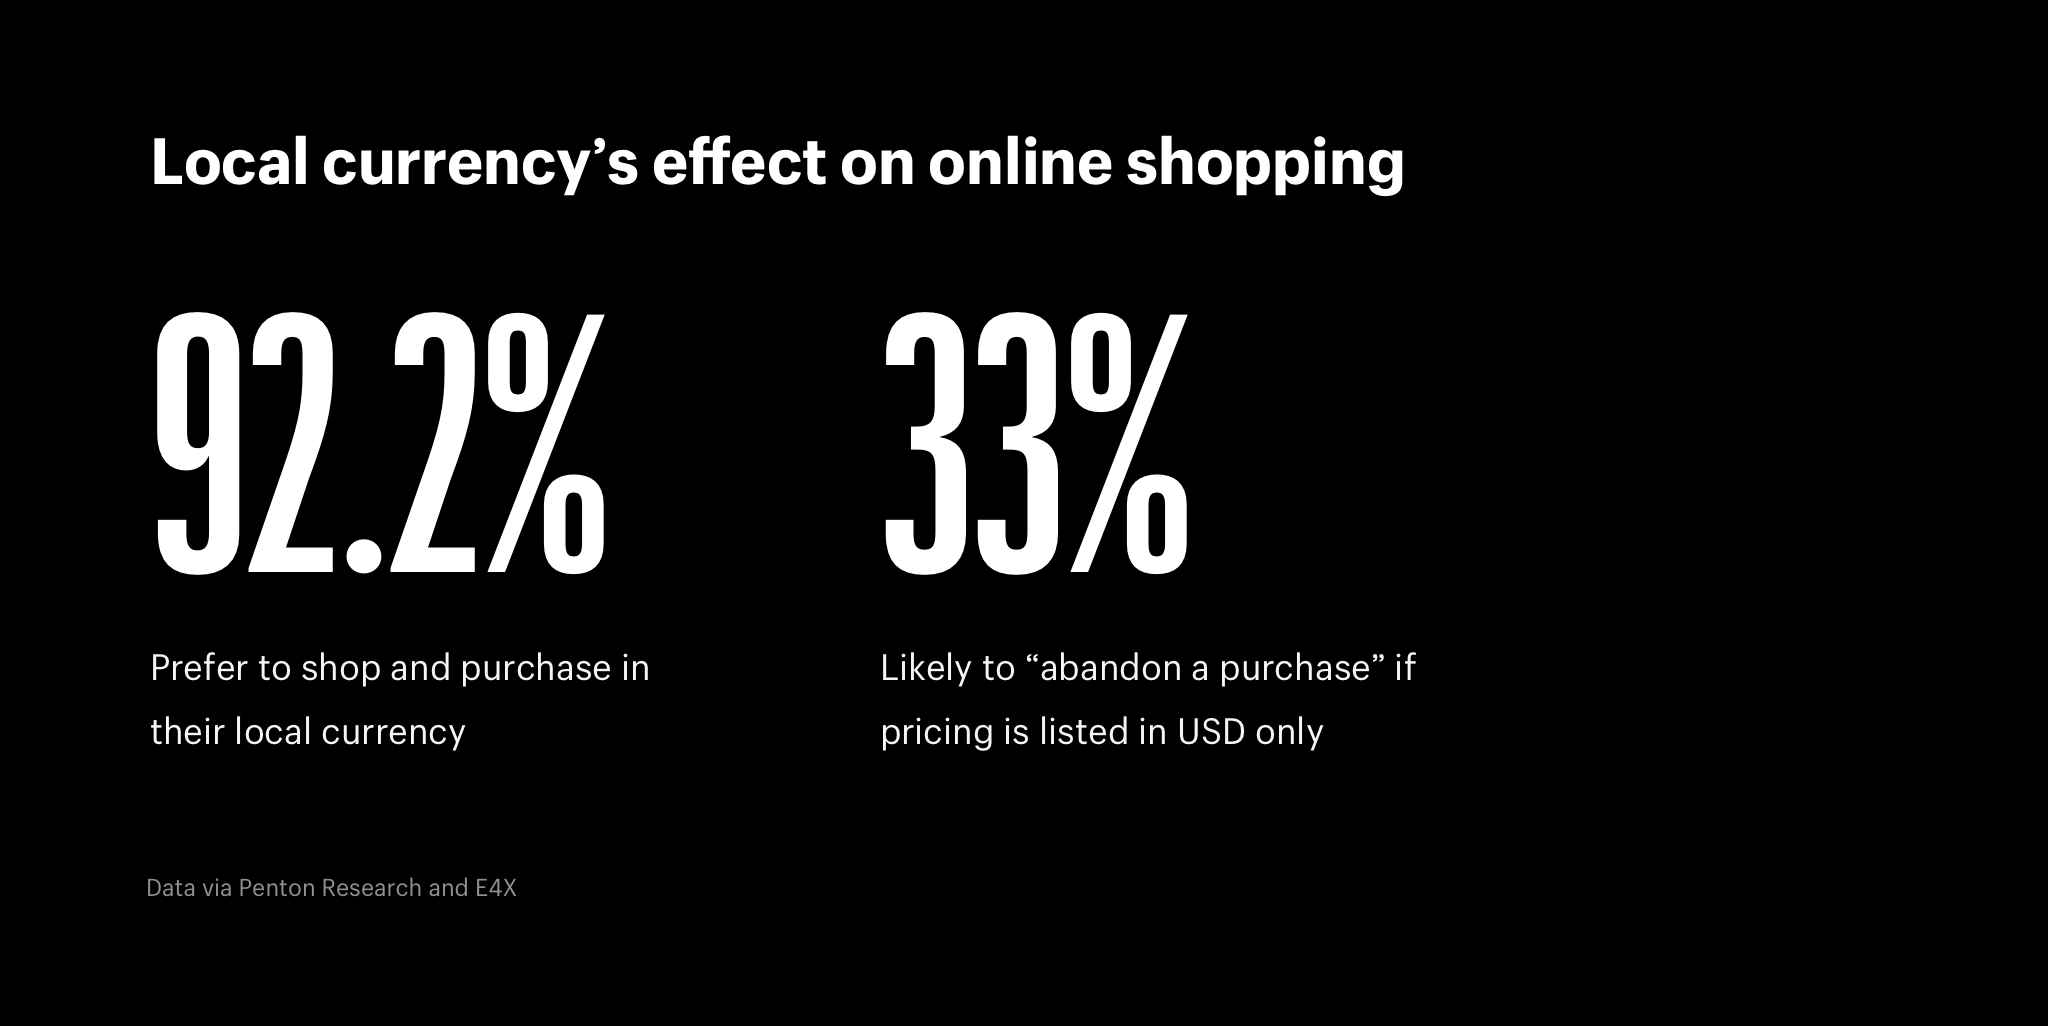 Local currency effect on online shopping